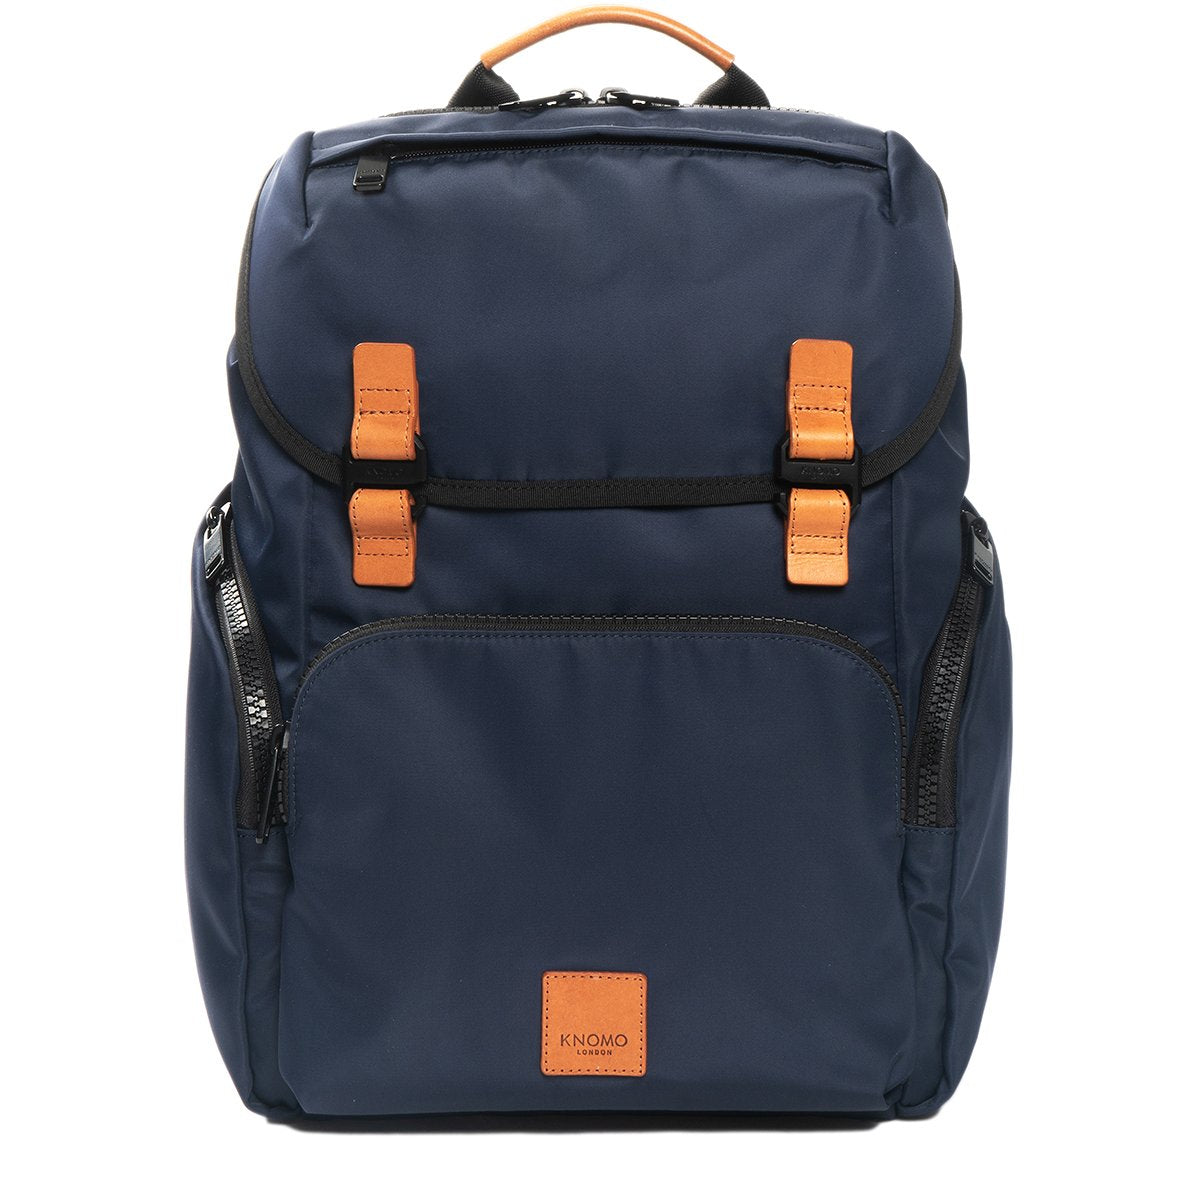 "Thurloe Laptop Backpack - 15"" -  15"" 